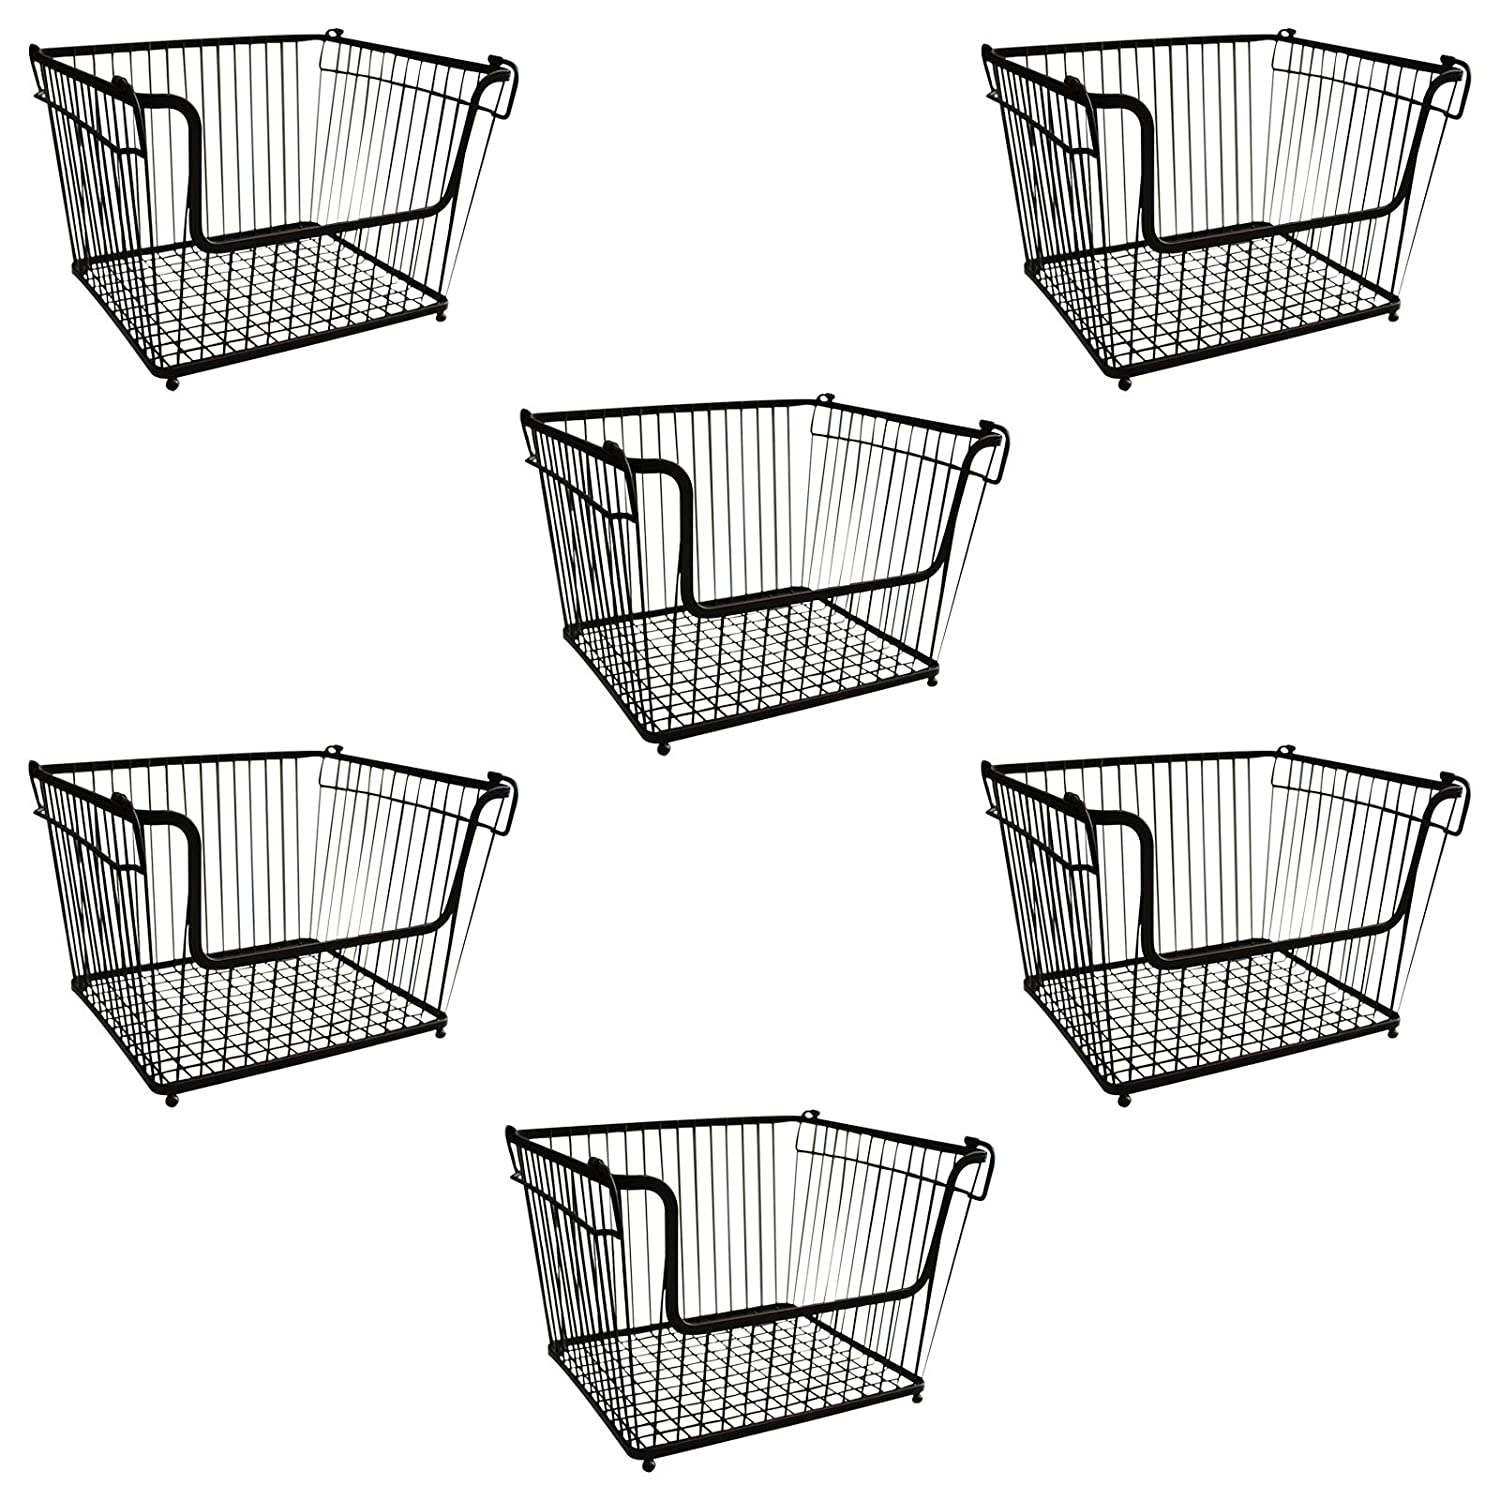 KURTZY 6 Pcs Stackable Wire Basket - Wire Storage Baskets with 2 Carrying Handles - Compact Storage basket (Black) Ideal for kitchen, bathroom - Save Space around House - 30cm x 21.5cm x 27cm